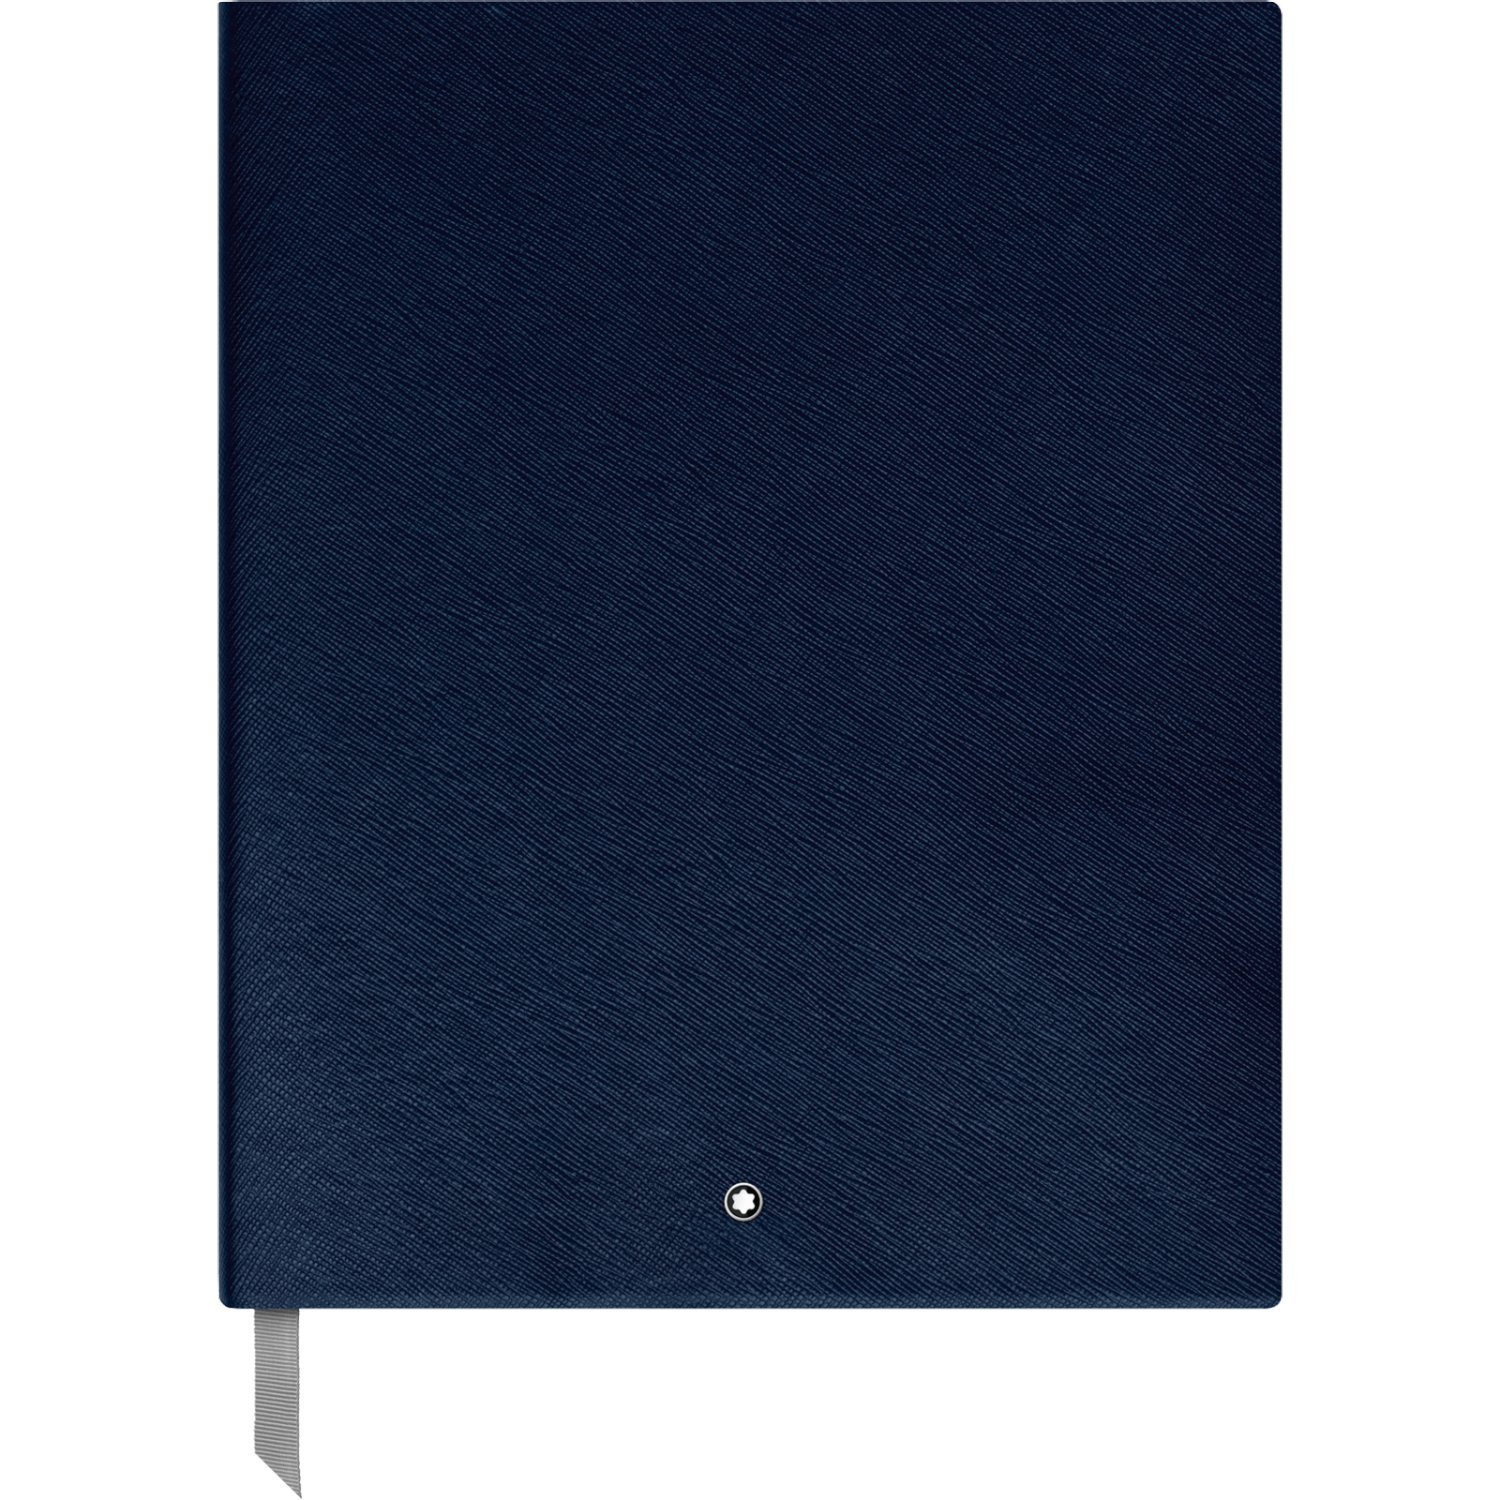 Montblanc Sketch Book Indigo Lined #149 Fine Stationery 116953 / Elegant Sketching Book with Leather Binding and Ruled Pages / 1 x (8.2 x 10.2 in.) by MONTBLANC